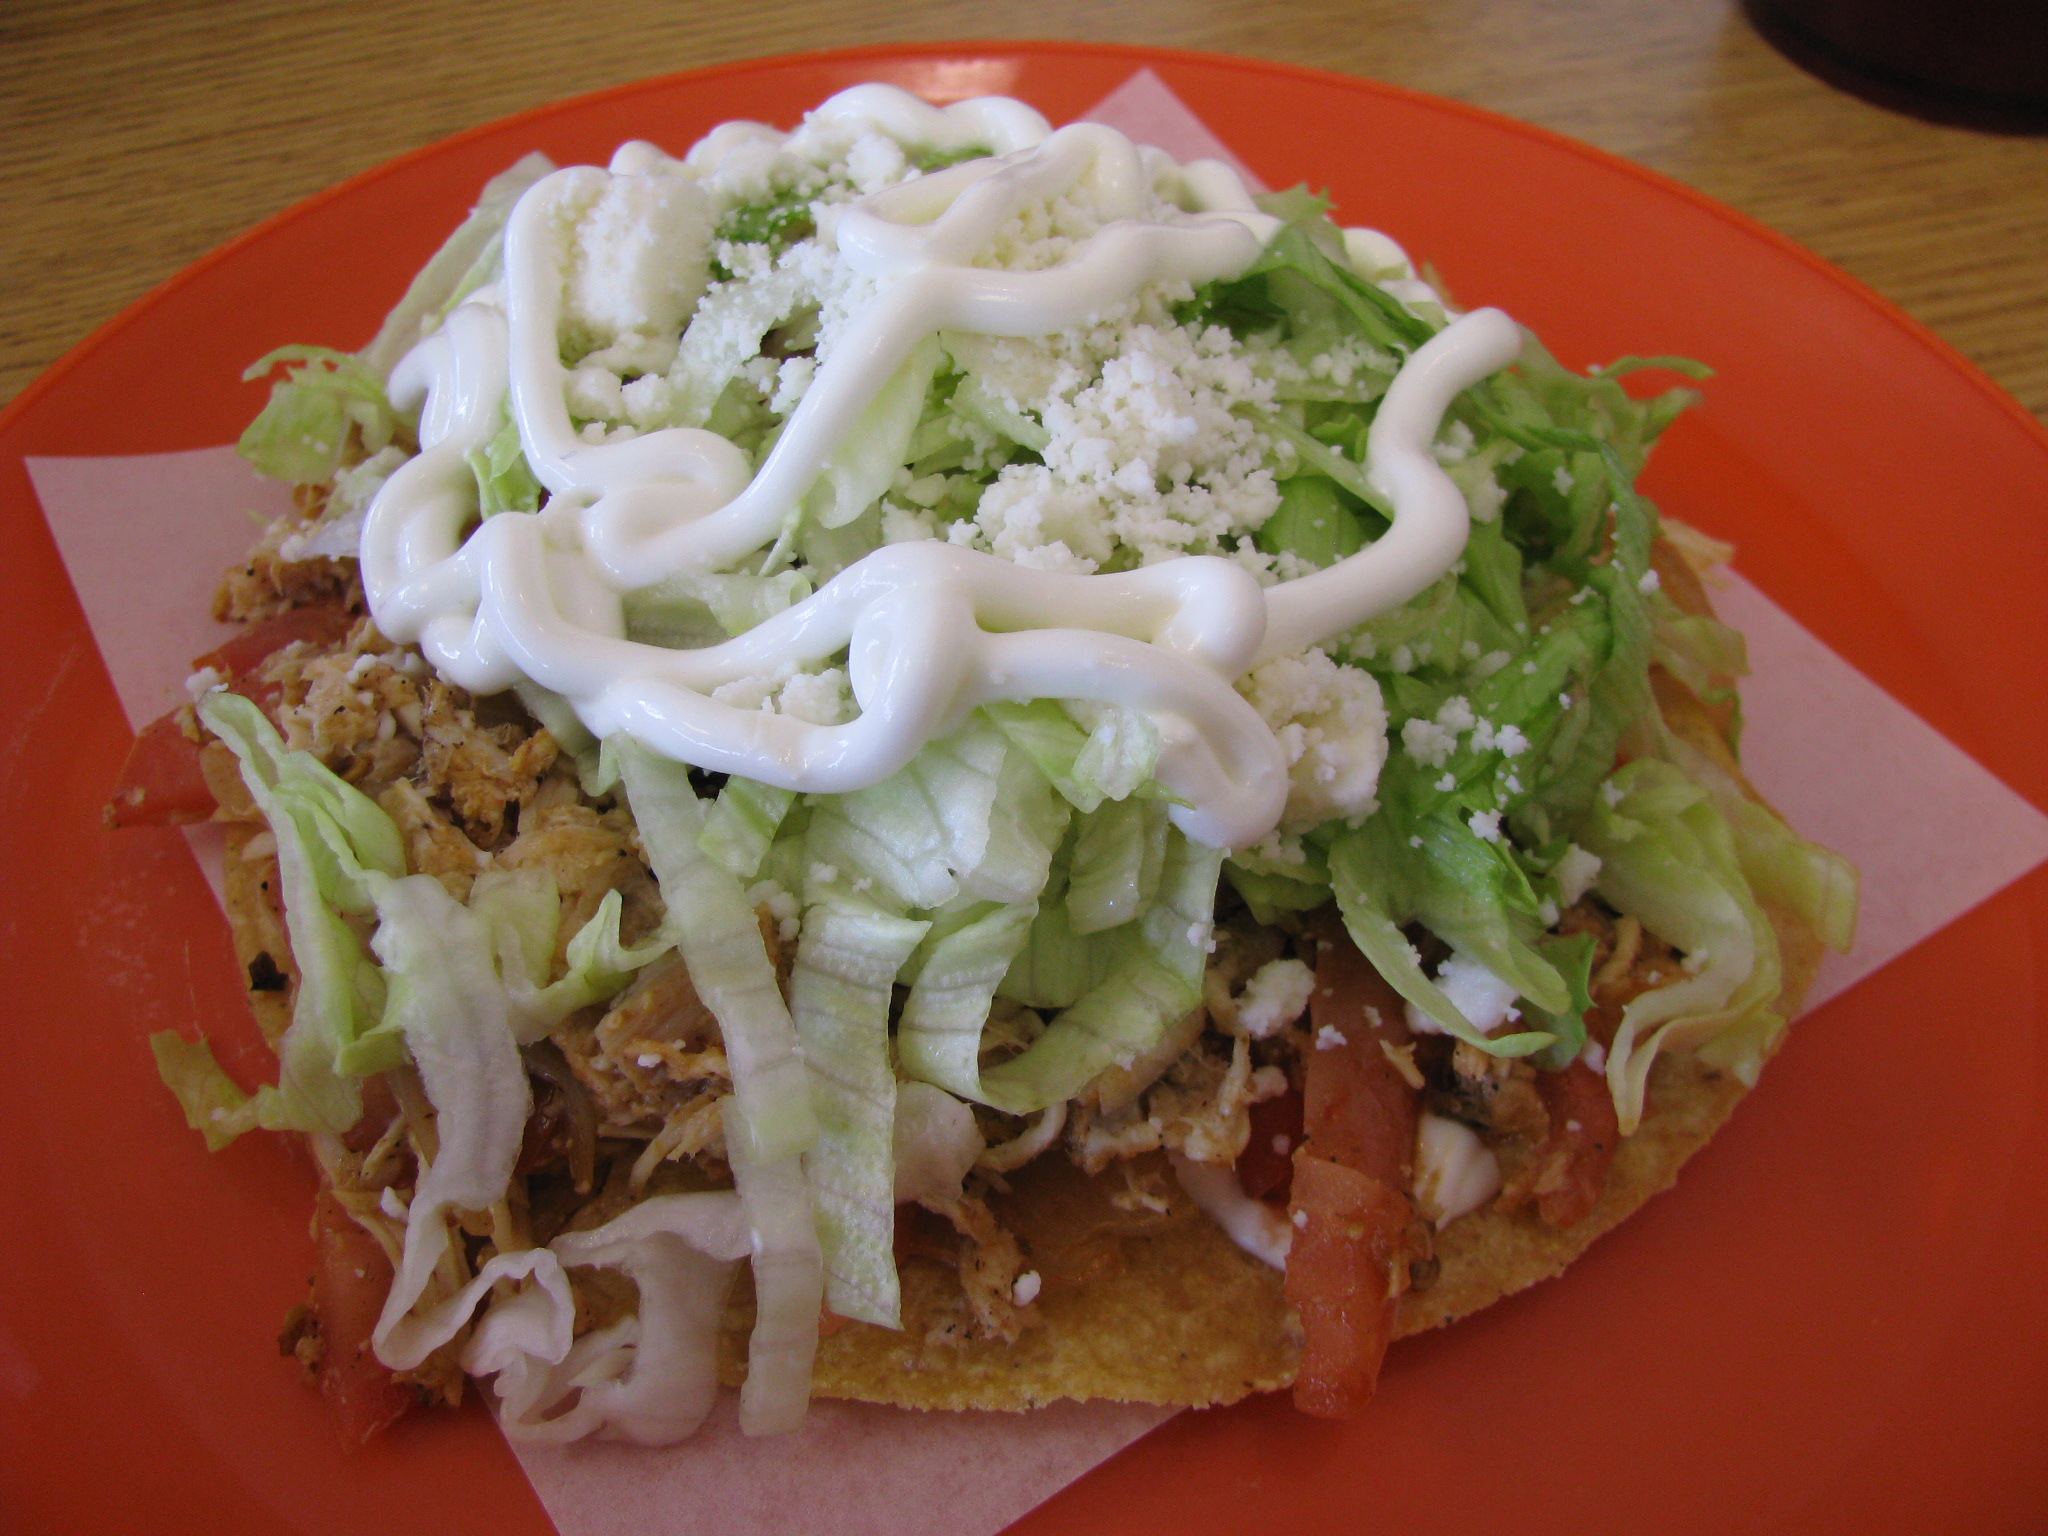 another novel dish was the tinga tostada tinga is a